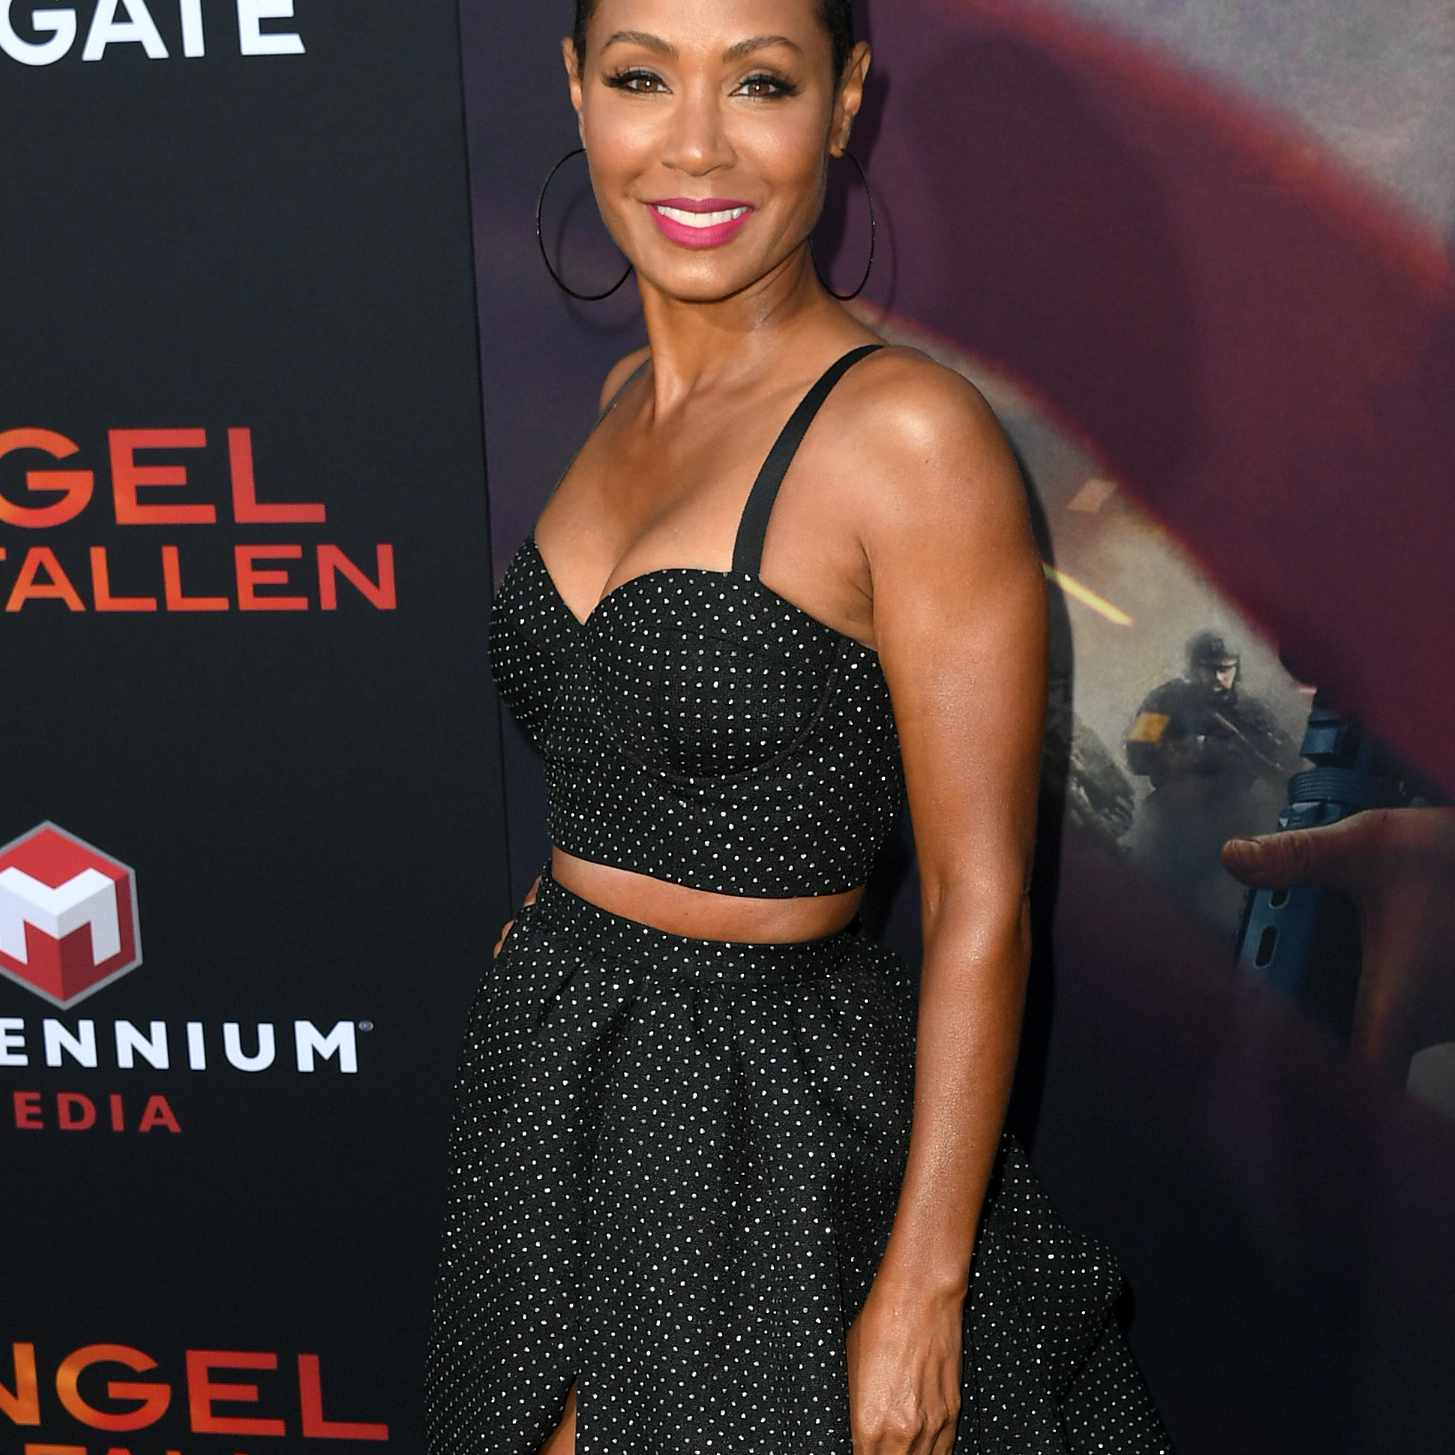 Jada Pinkett-Smith wearing a black dress on the red carpet of Lionsgate's